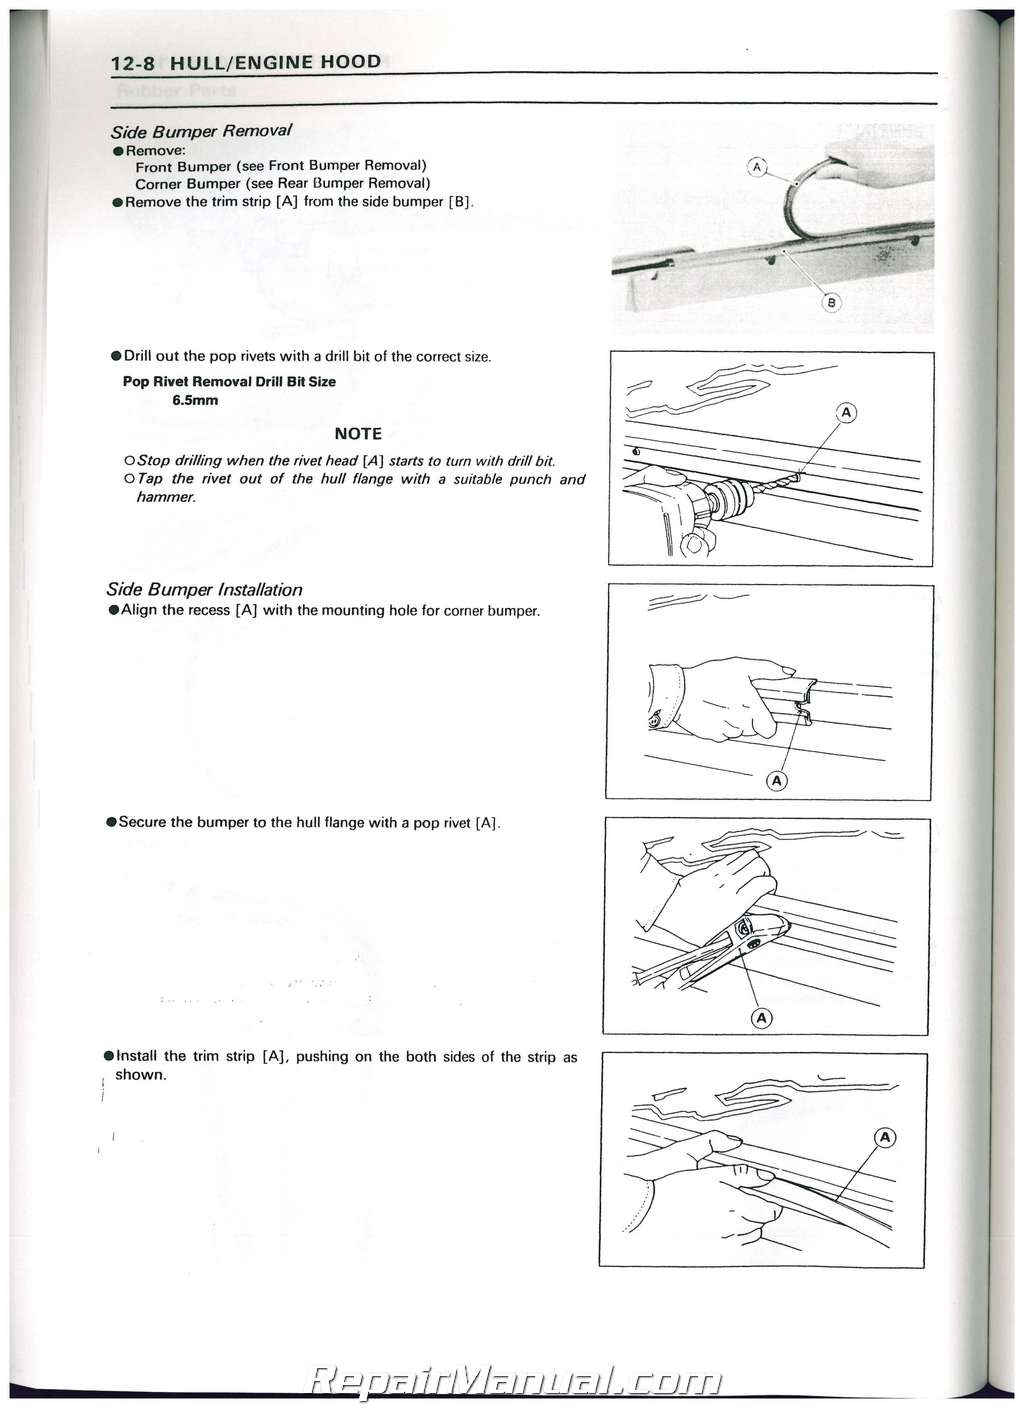 hight resolution of 1996 2002 kawasaki 1100 zxi 1999 1100 stx jet ski factory service manual zxi 1100 engine 2000 kawasaki zxi 1100 wiring diagram